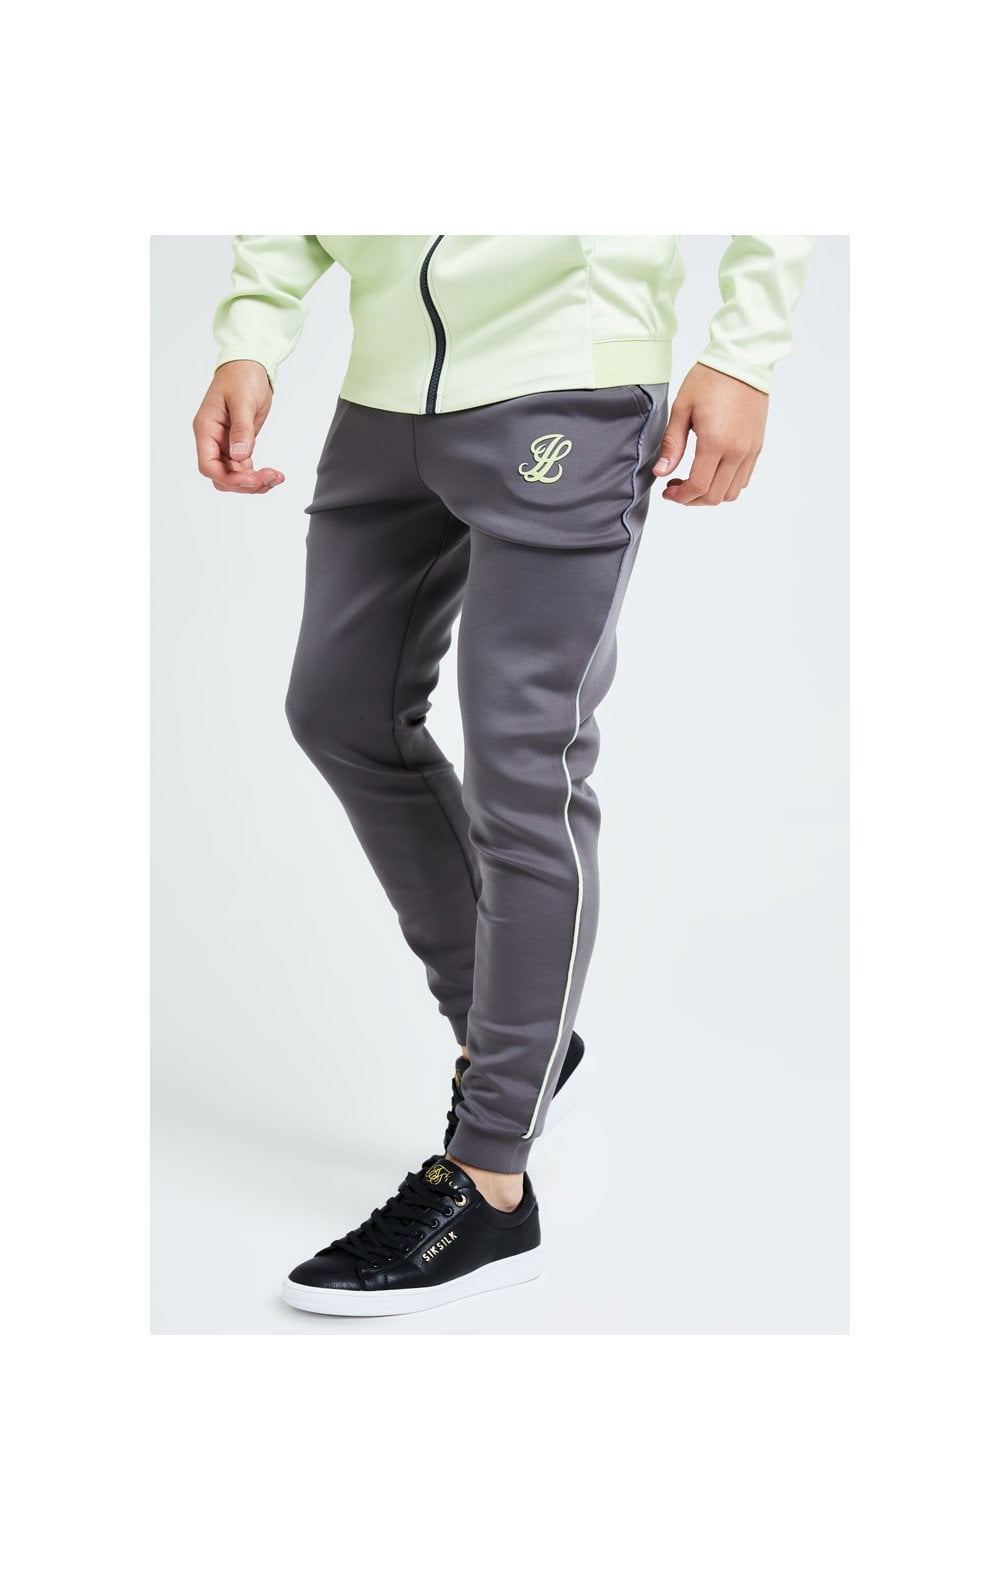 Illusive London Blaze Fade Piping Jogger - Dark Grey & Lime